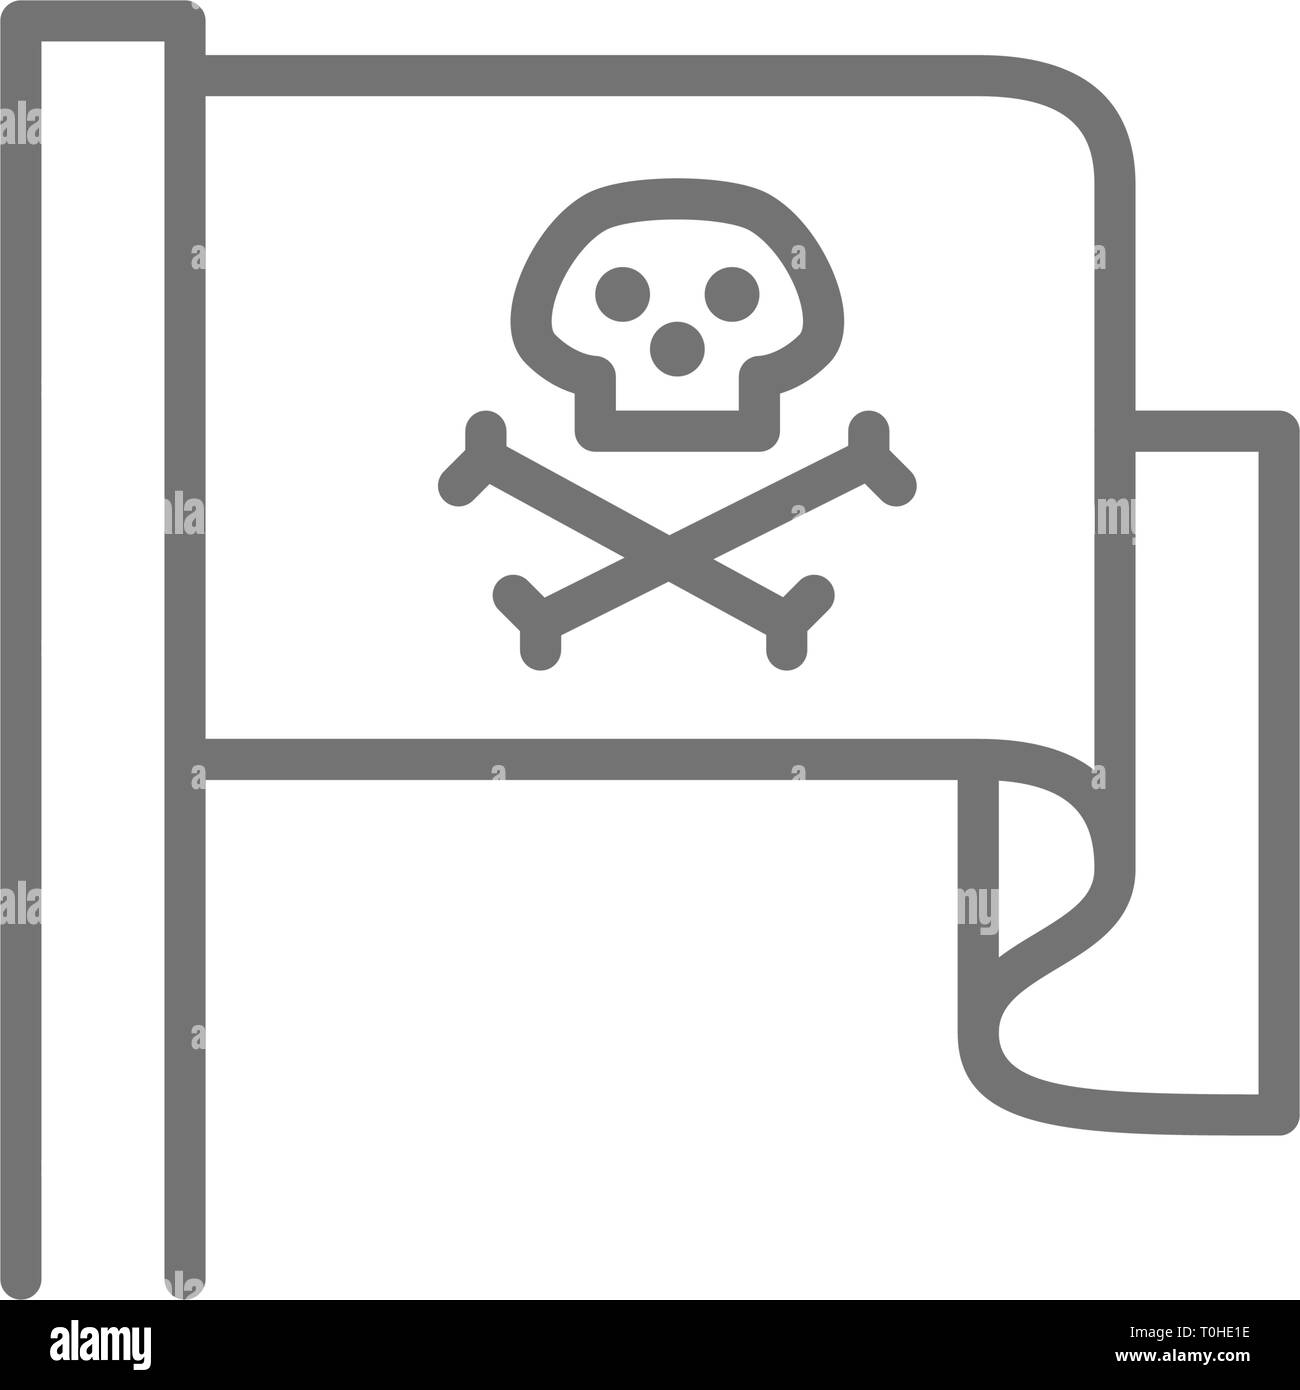 Pirate flag, Jolly Roger line icon. - Stock Image